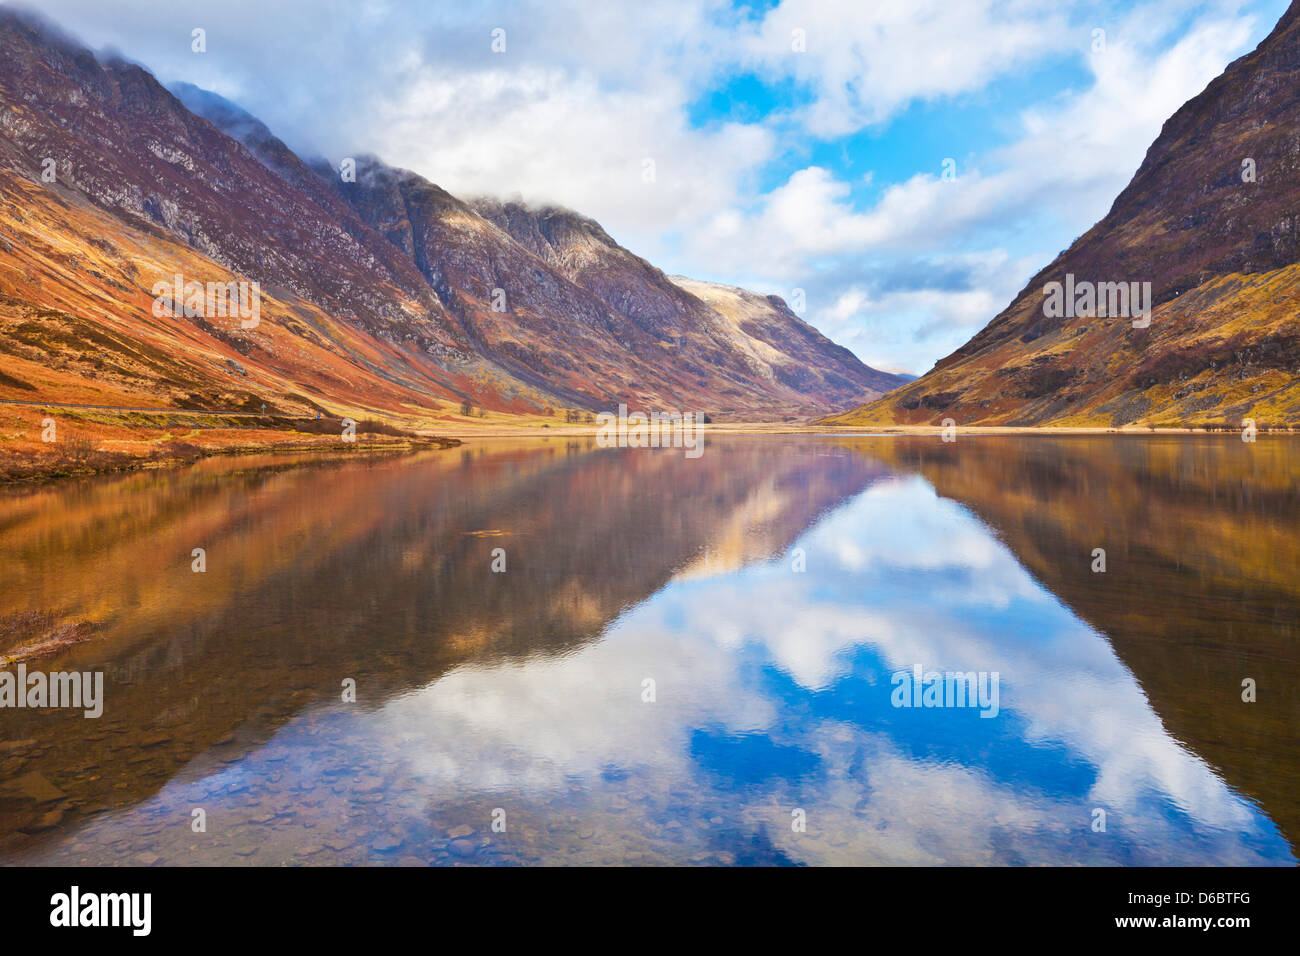 Glen Coe Loch Achtriochtan and reflections of the Eagach Ridge The Scottish Highlands, Scotland, UK, GB, EU, Europe - Stock Image